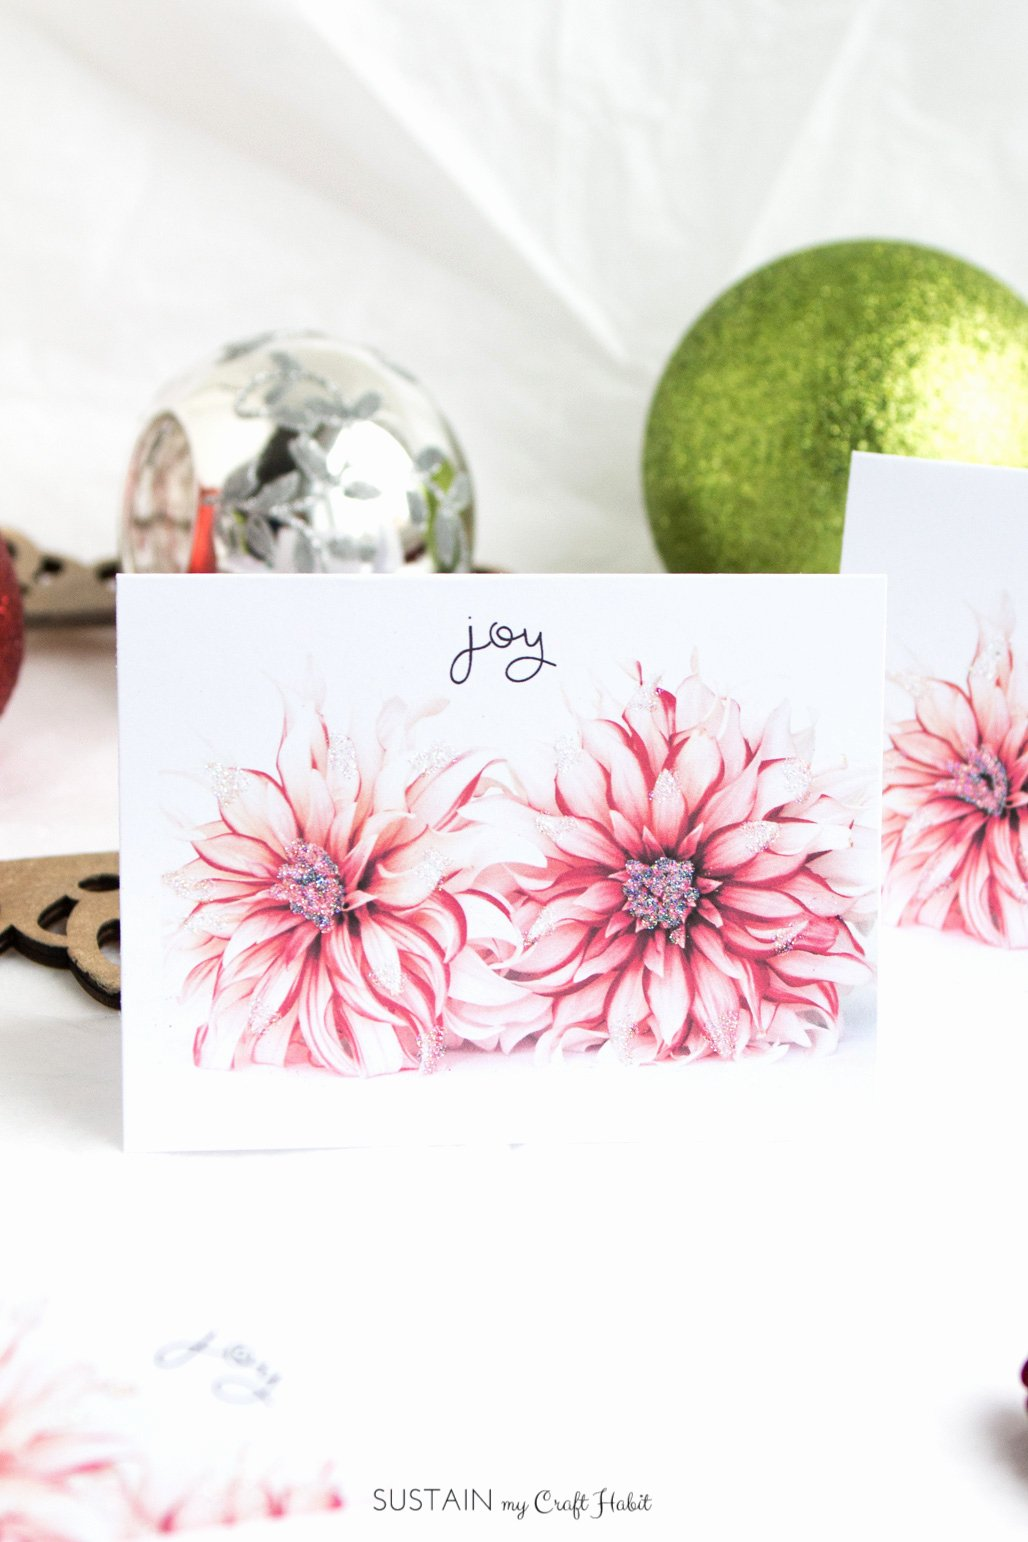 Diy Greeting Cards Template Inspirational Free Printable Diy Christmas Cards Floral Joy – Sustain